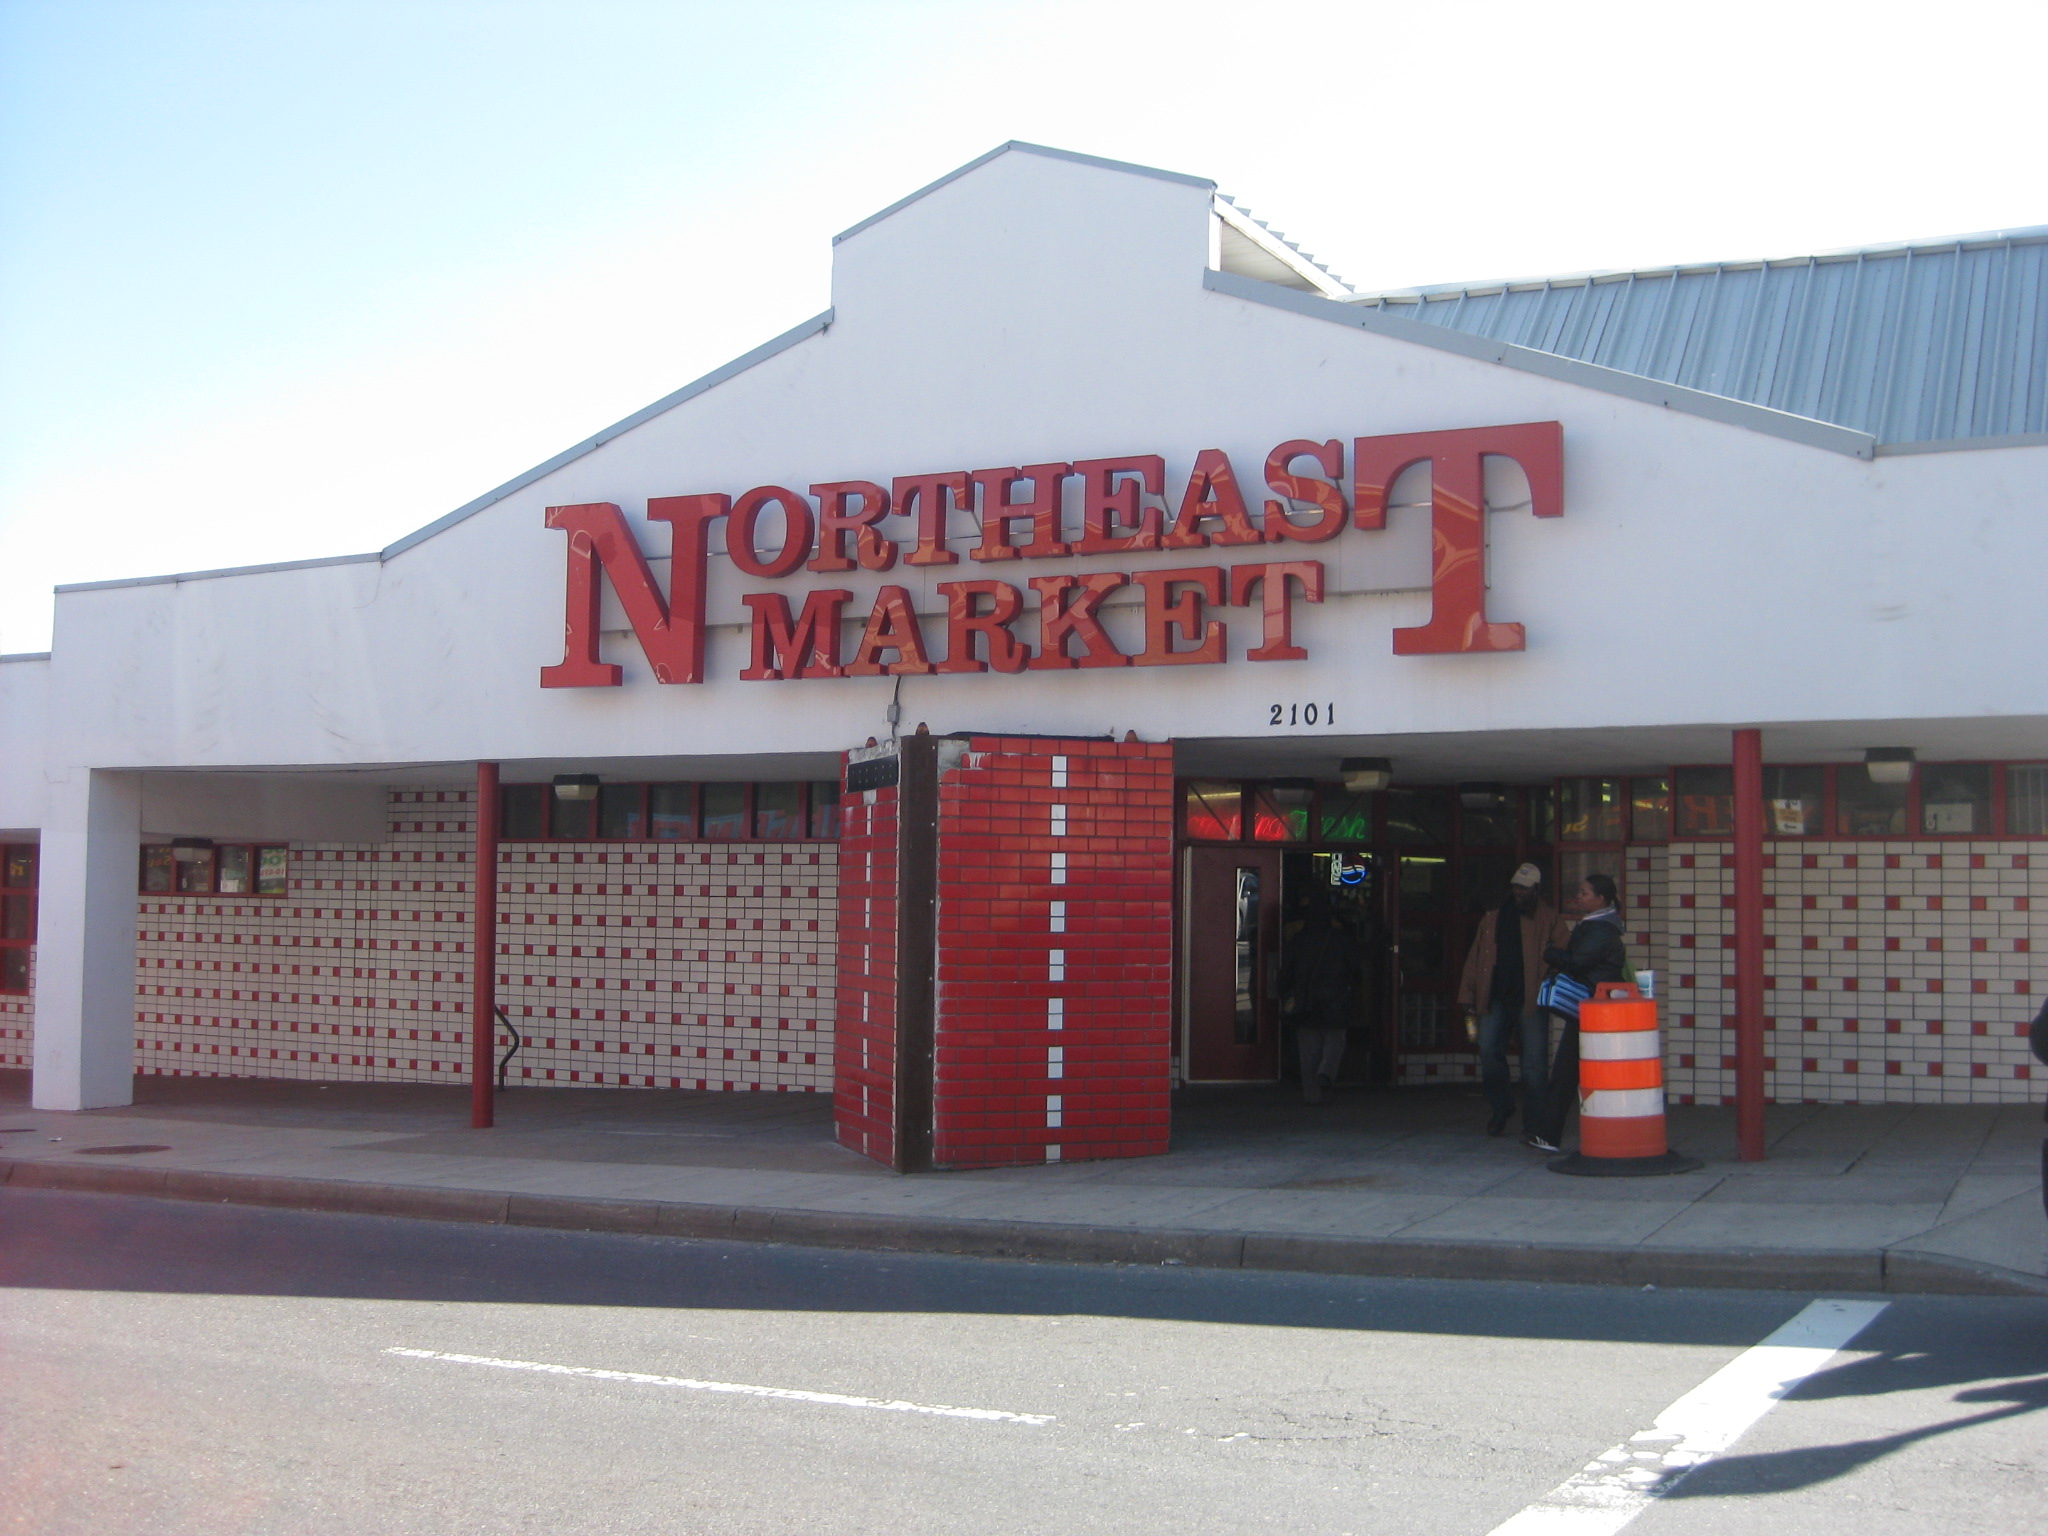 Creating a Vision for the Northeast Market